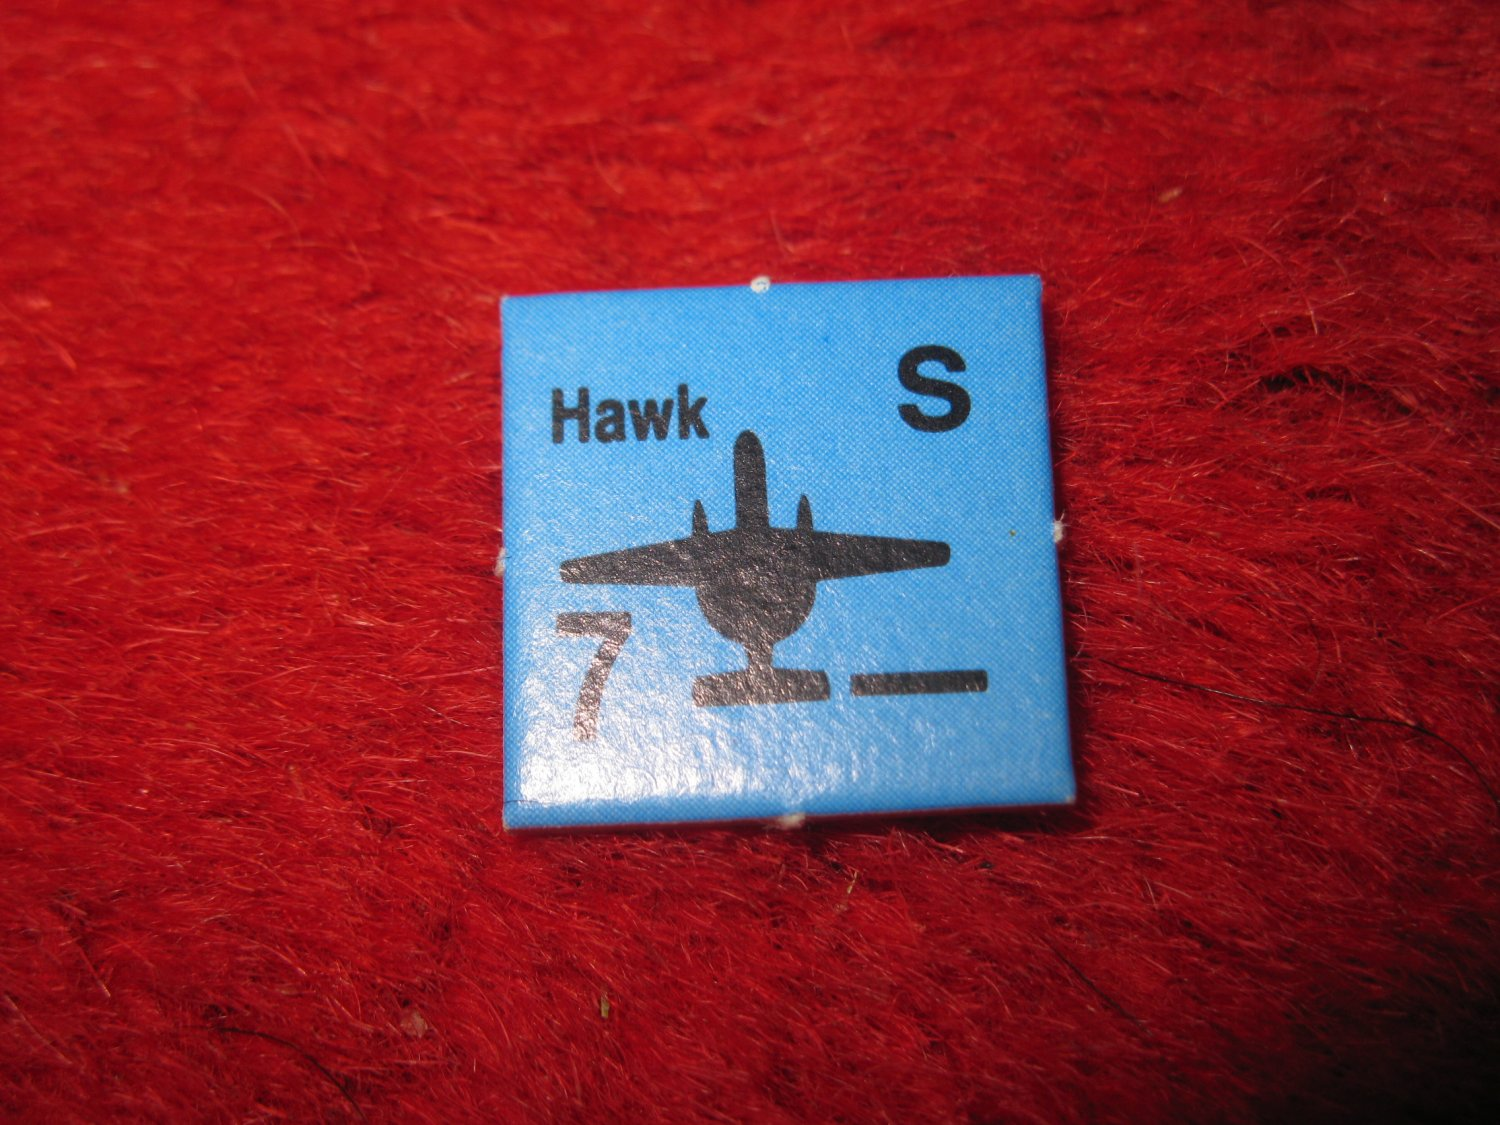 1988 The Hunt for Red October Board Game Piece: HAWK blue Square Counter